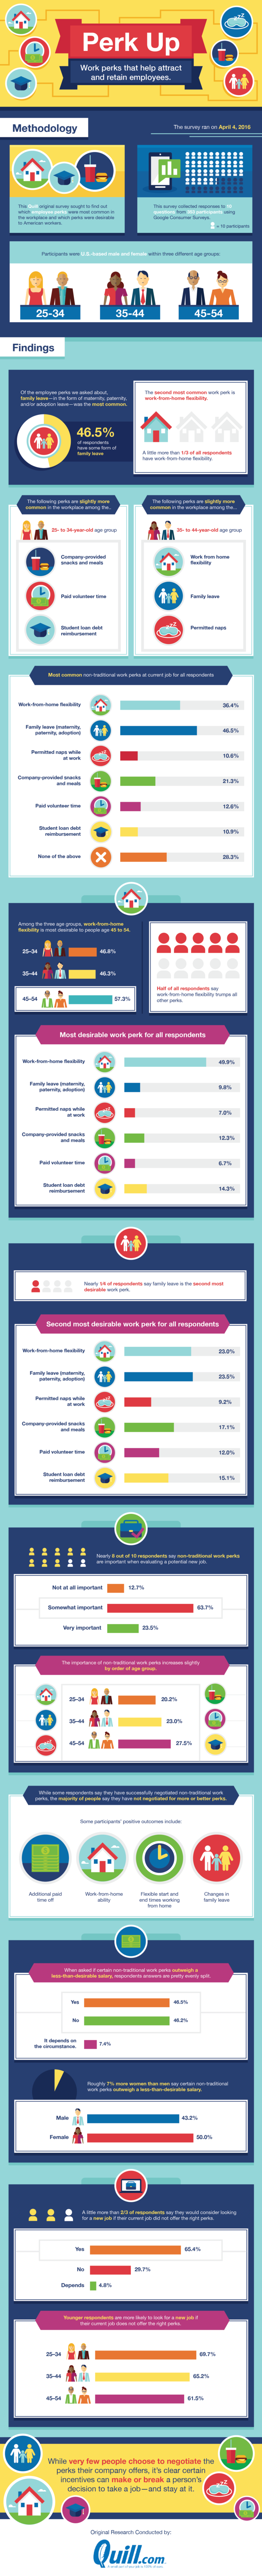 employee-perks-survey-infographic-710x6994.png